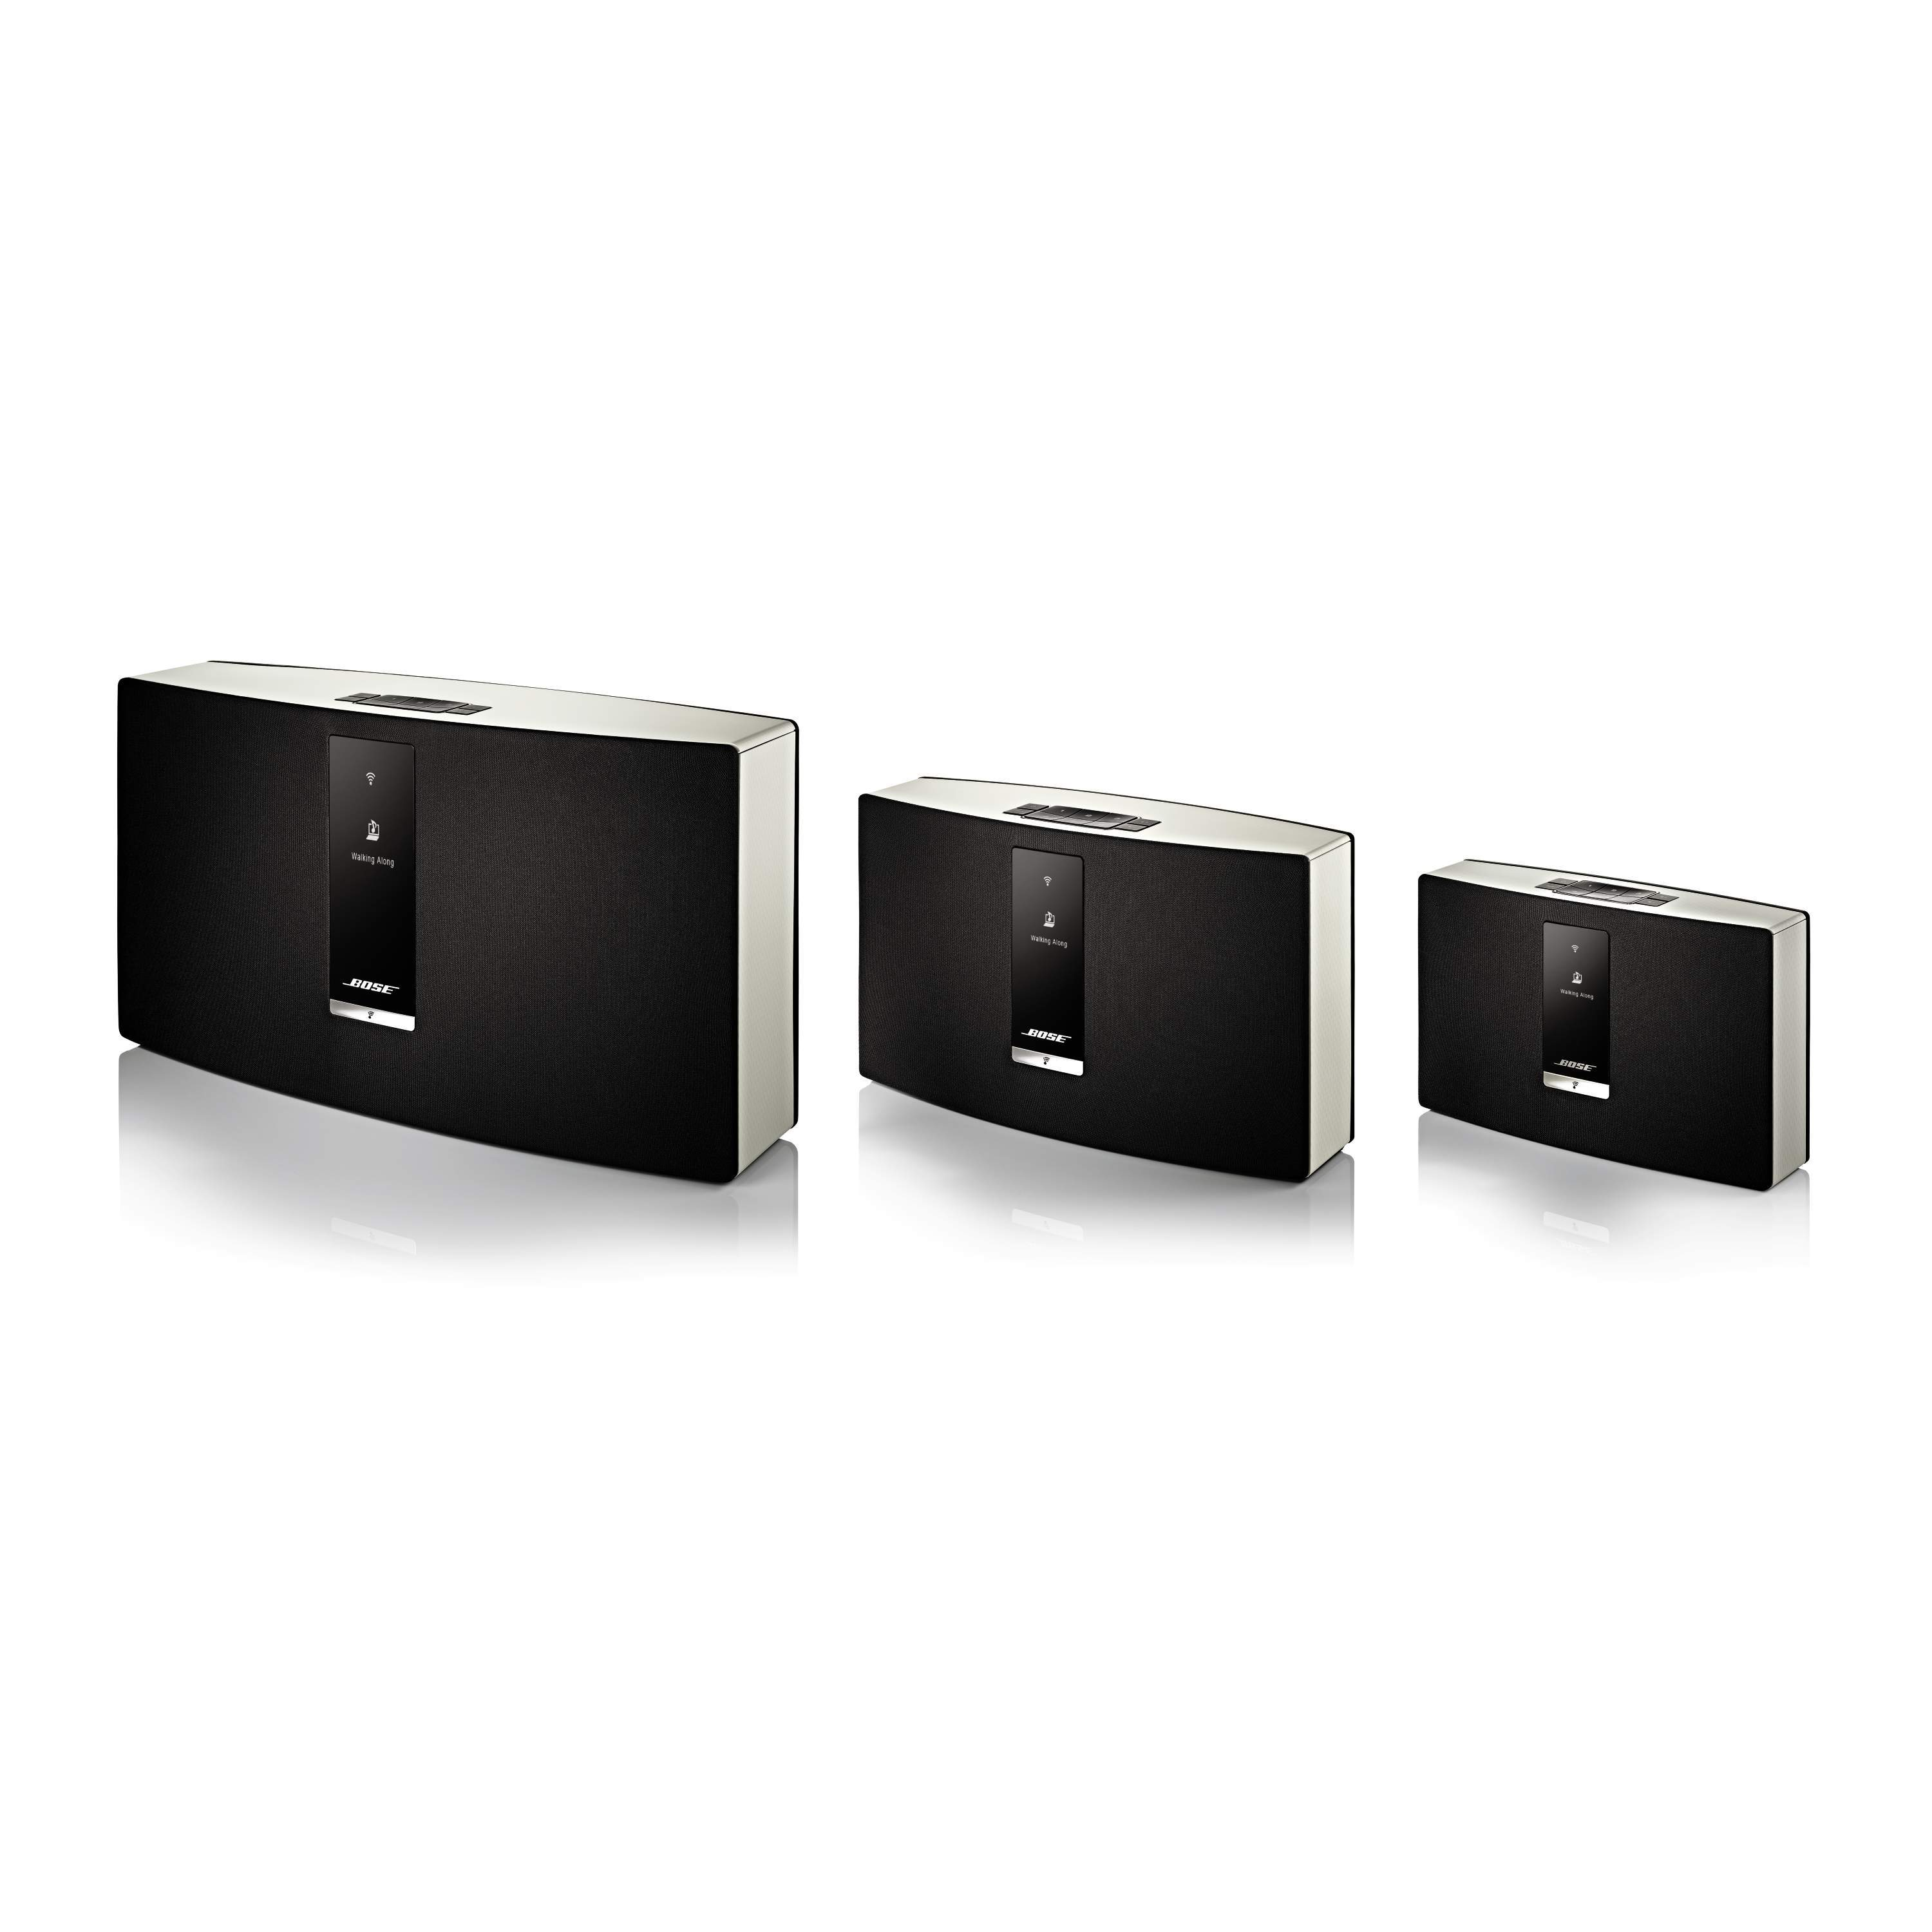 bose lance les syst mes audio wi fi soundtouch. Black Bedroom Furniture Sets. Home Design Ideas